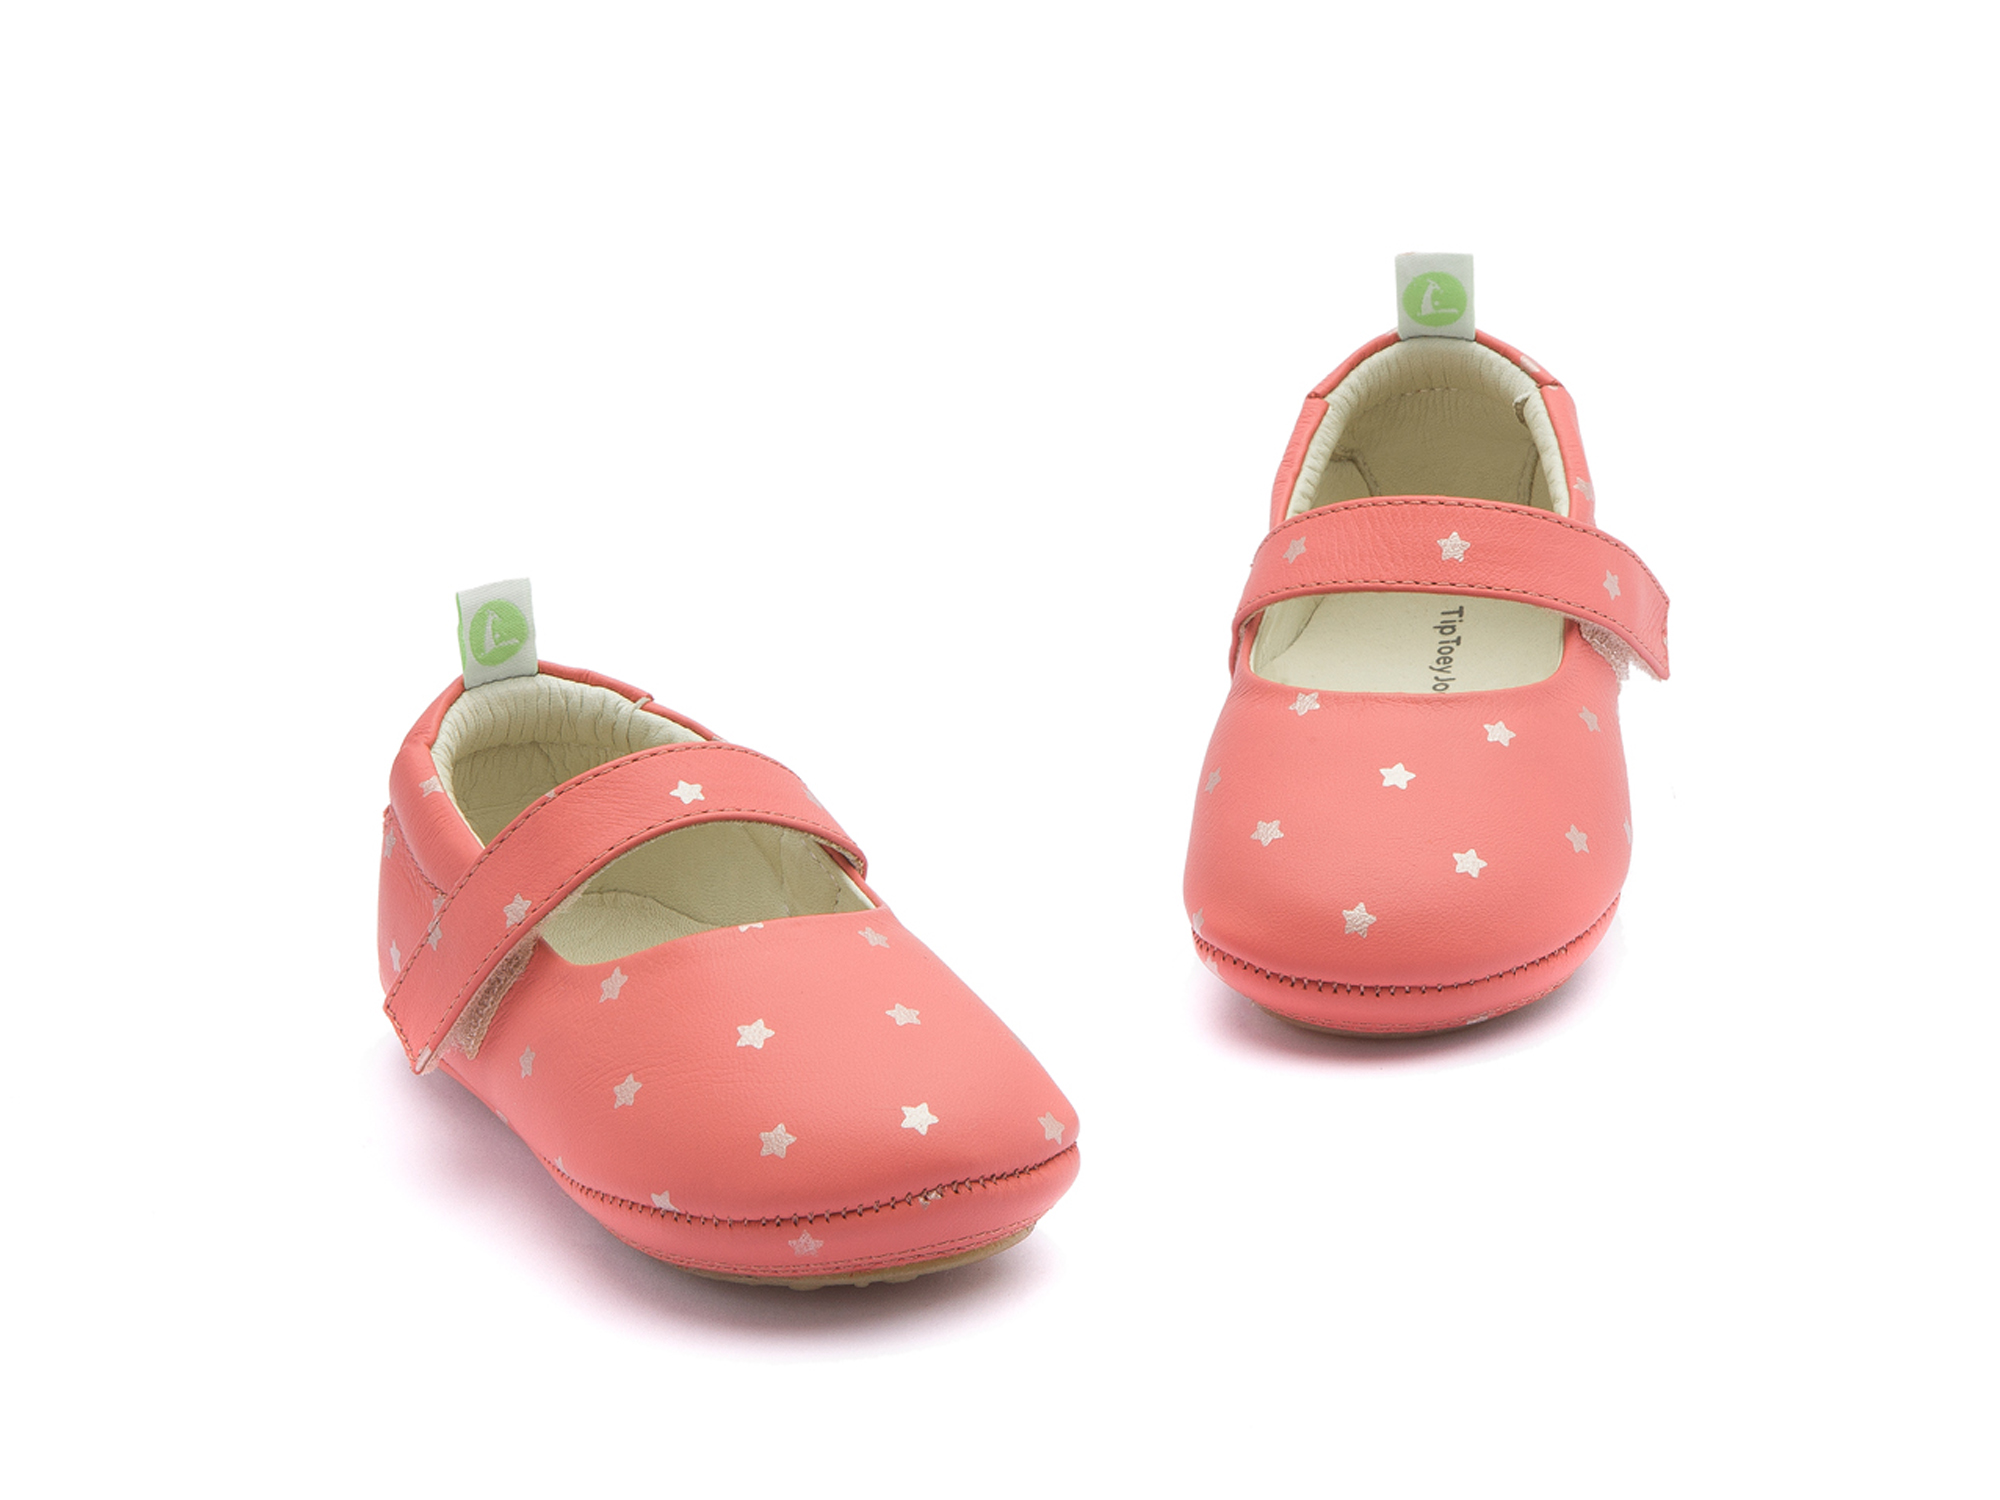 Boneca Dolly Coral Matte Stars Baby 0 à 2 anos - 2